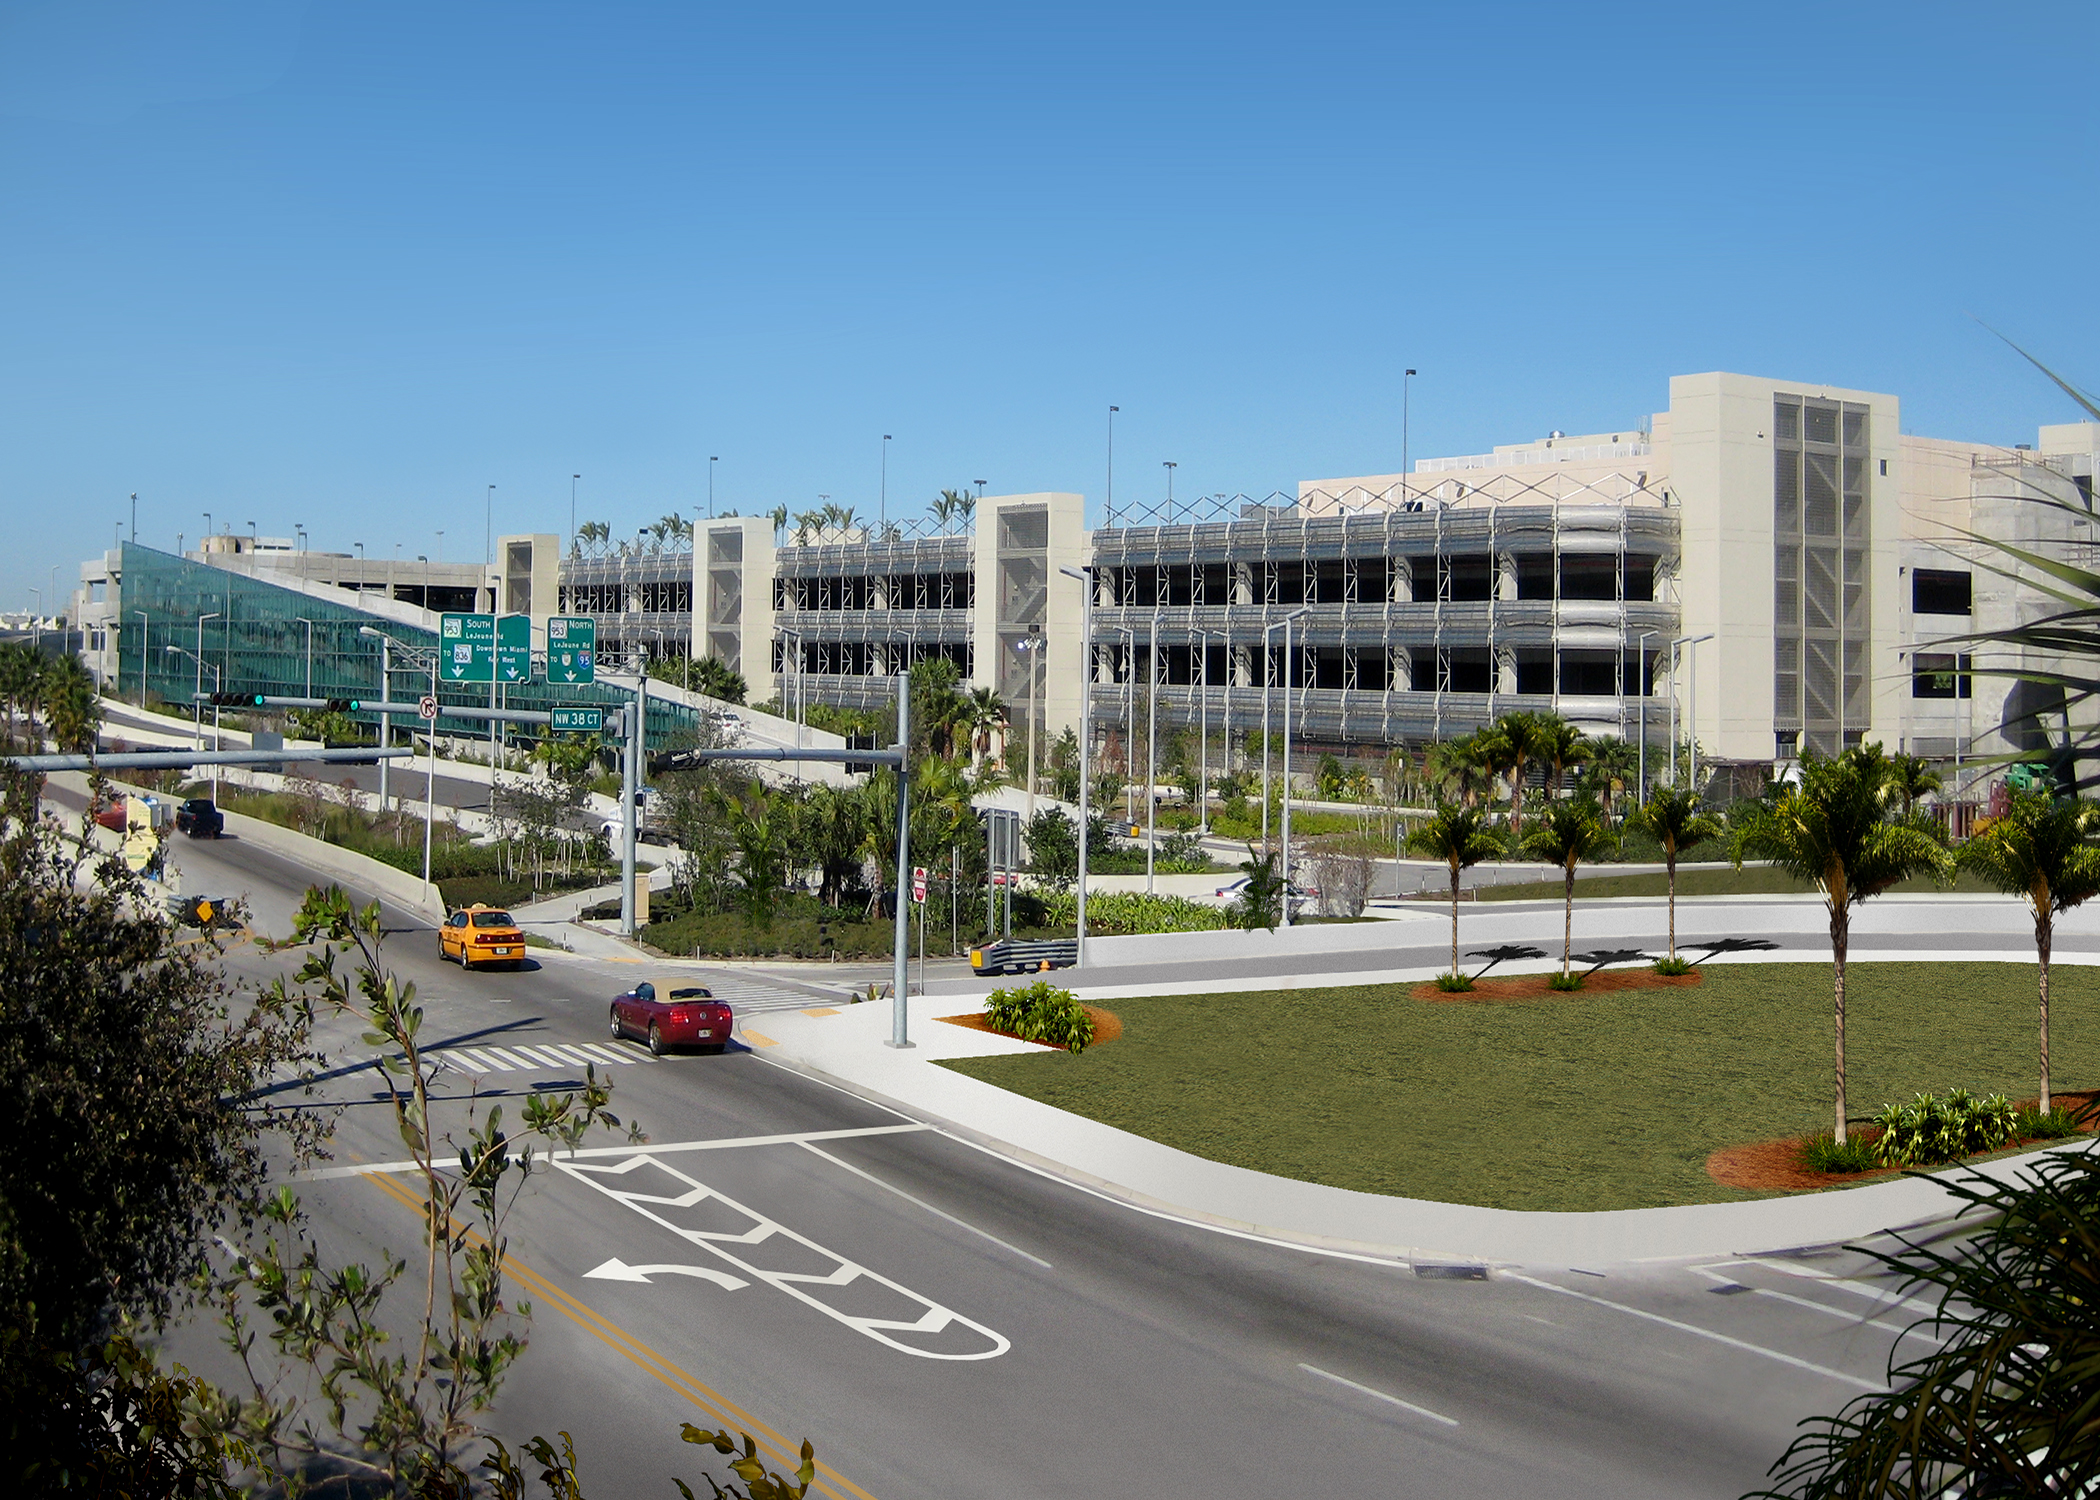 Miami Intermodal Center Rental Car F